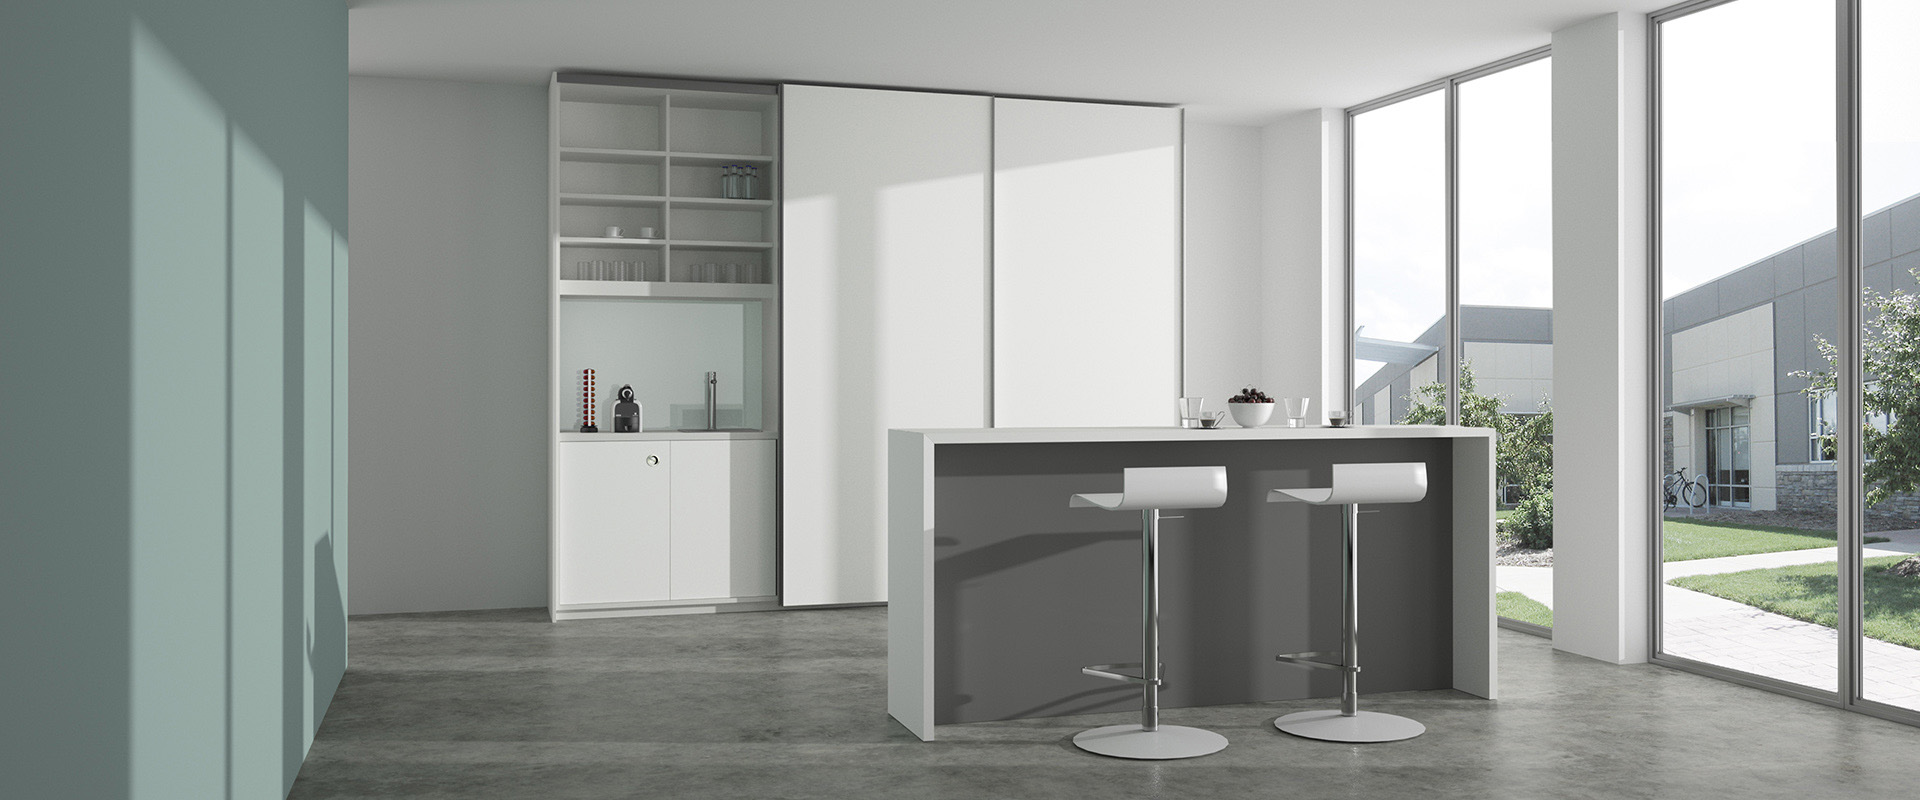 Sliding-door cupboards basic S